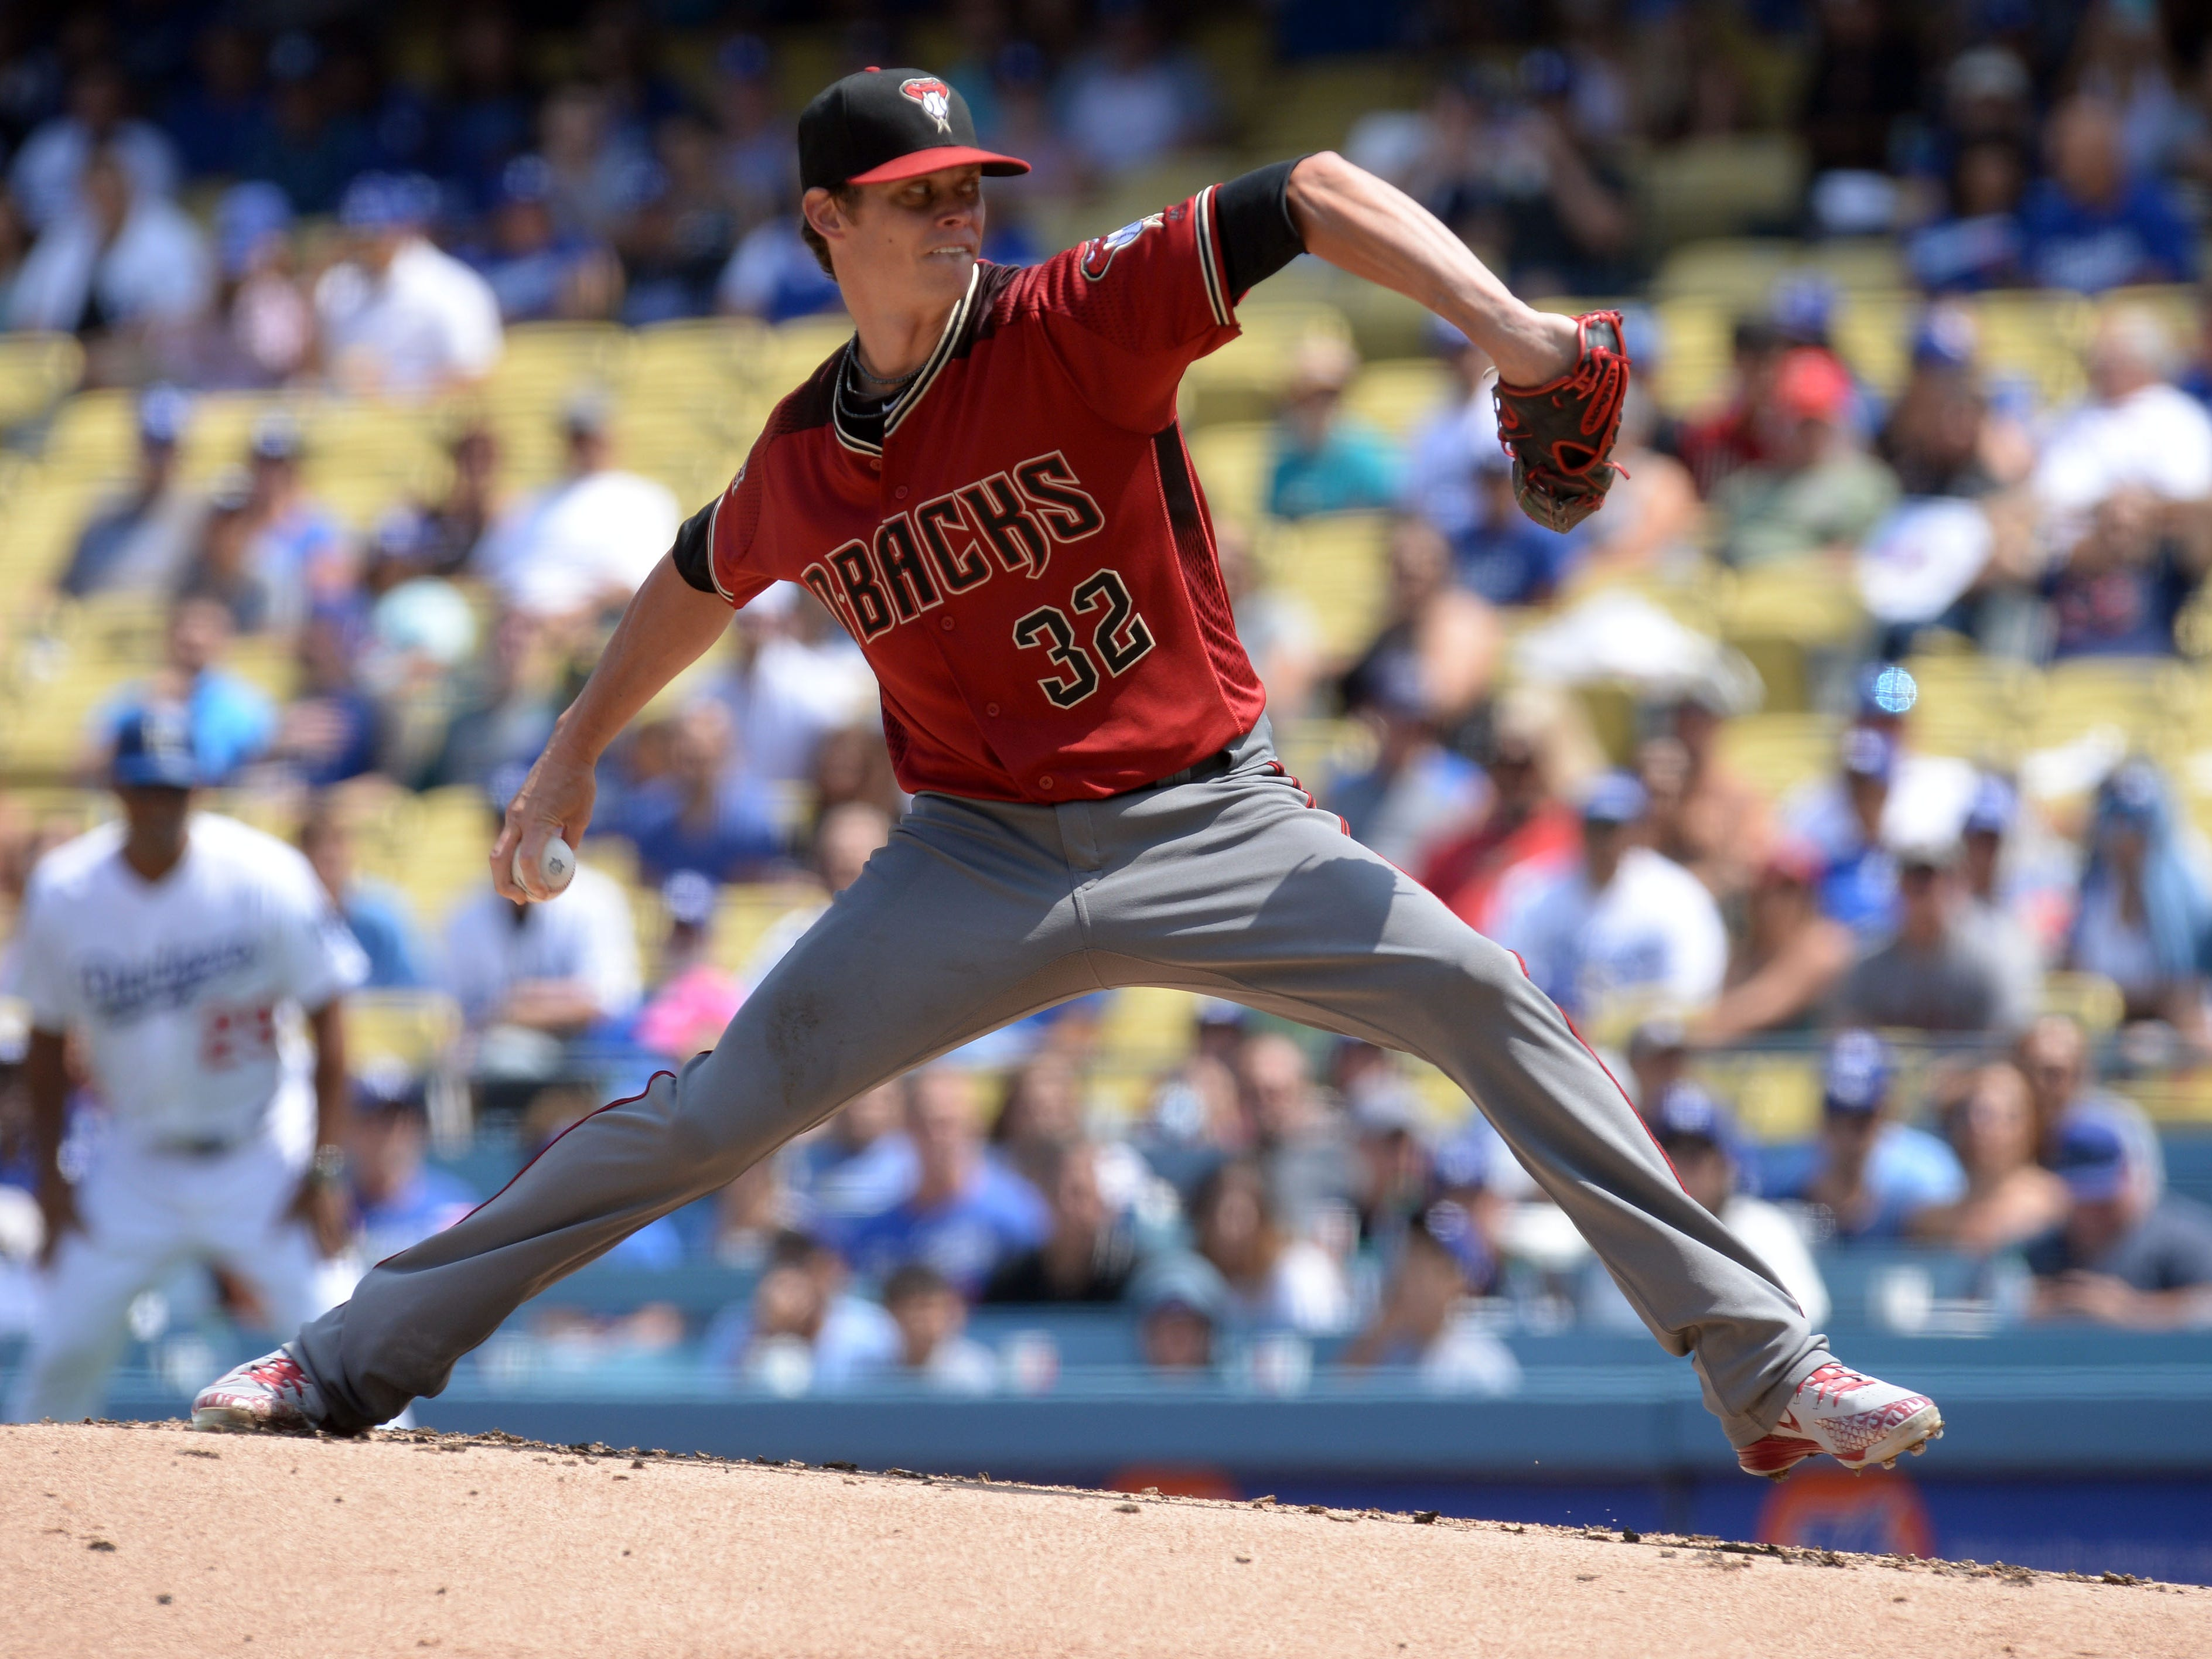 September 2, 2018; Los Angeles, CA, USA; Arizona Diamondbacks starting pitcher Clay Buchholz (32) throws against the Los Angeles Dodgers in the first inning at Dodger Stadium. Mandatory Credit: Gary A. Vasquez-USA TODAY Sports